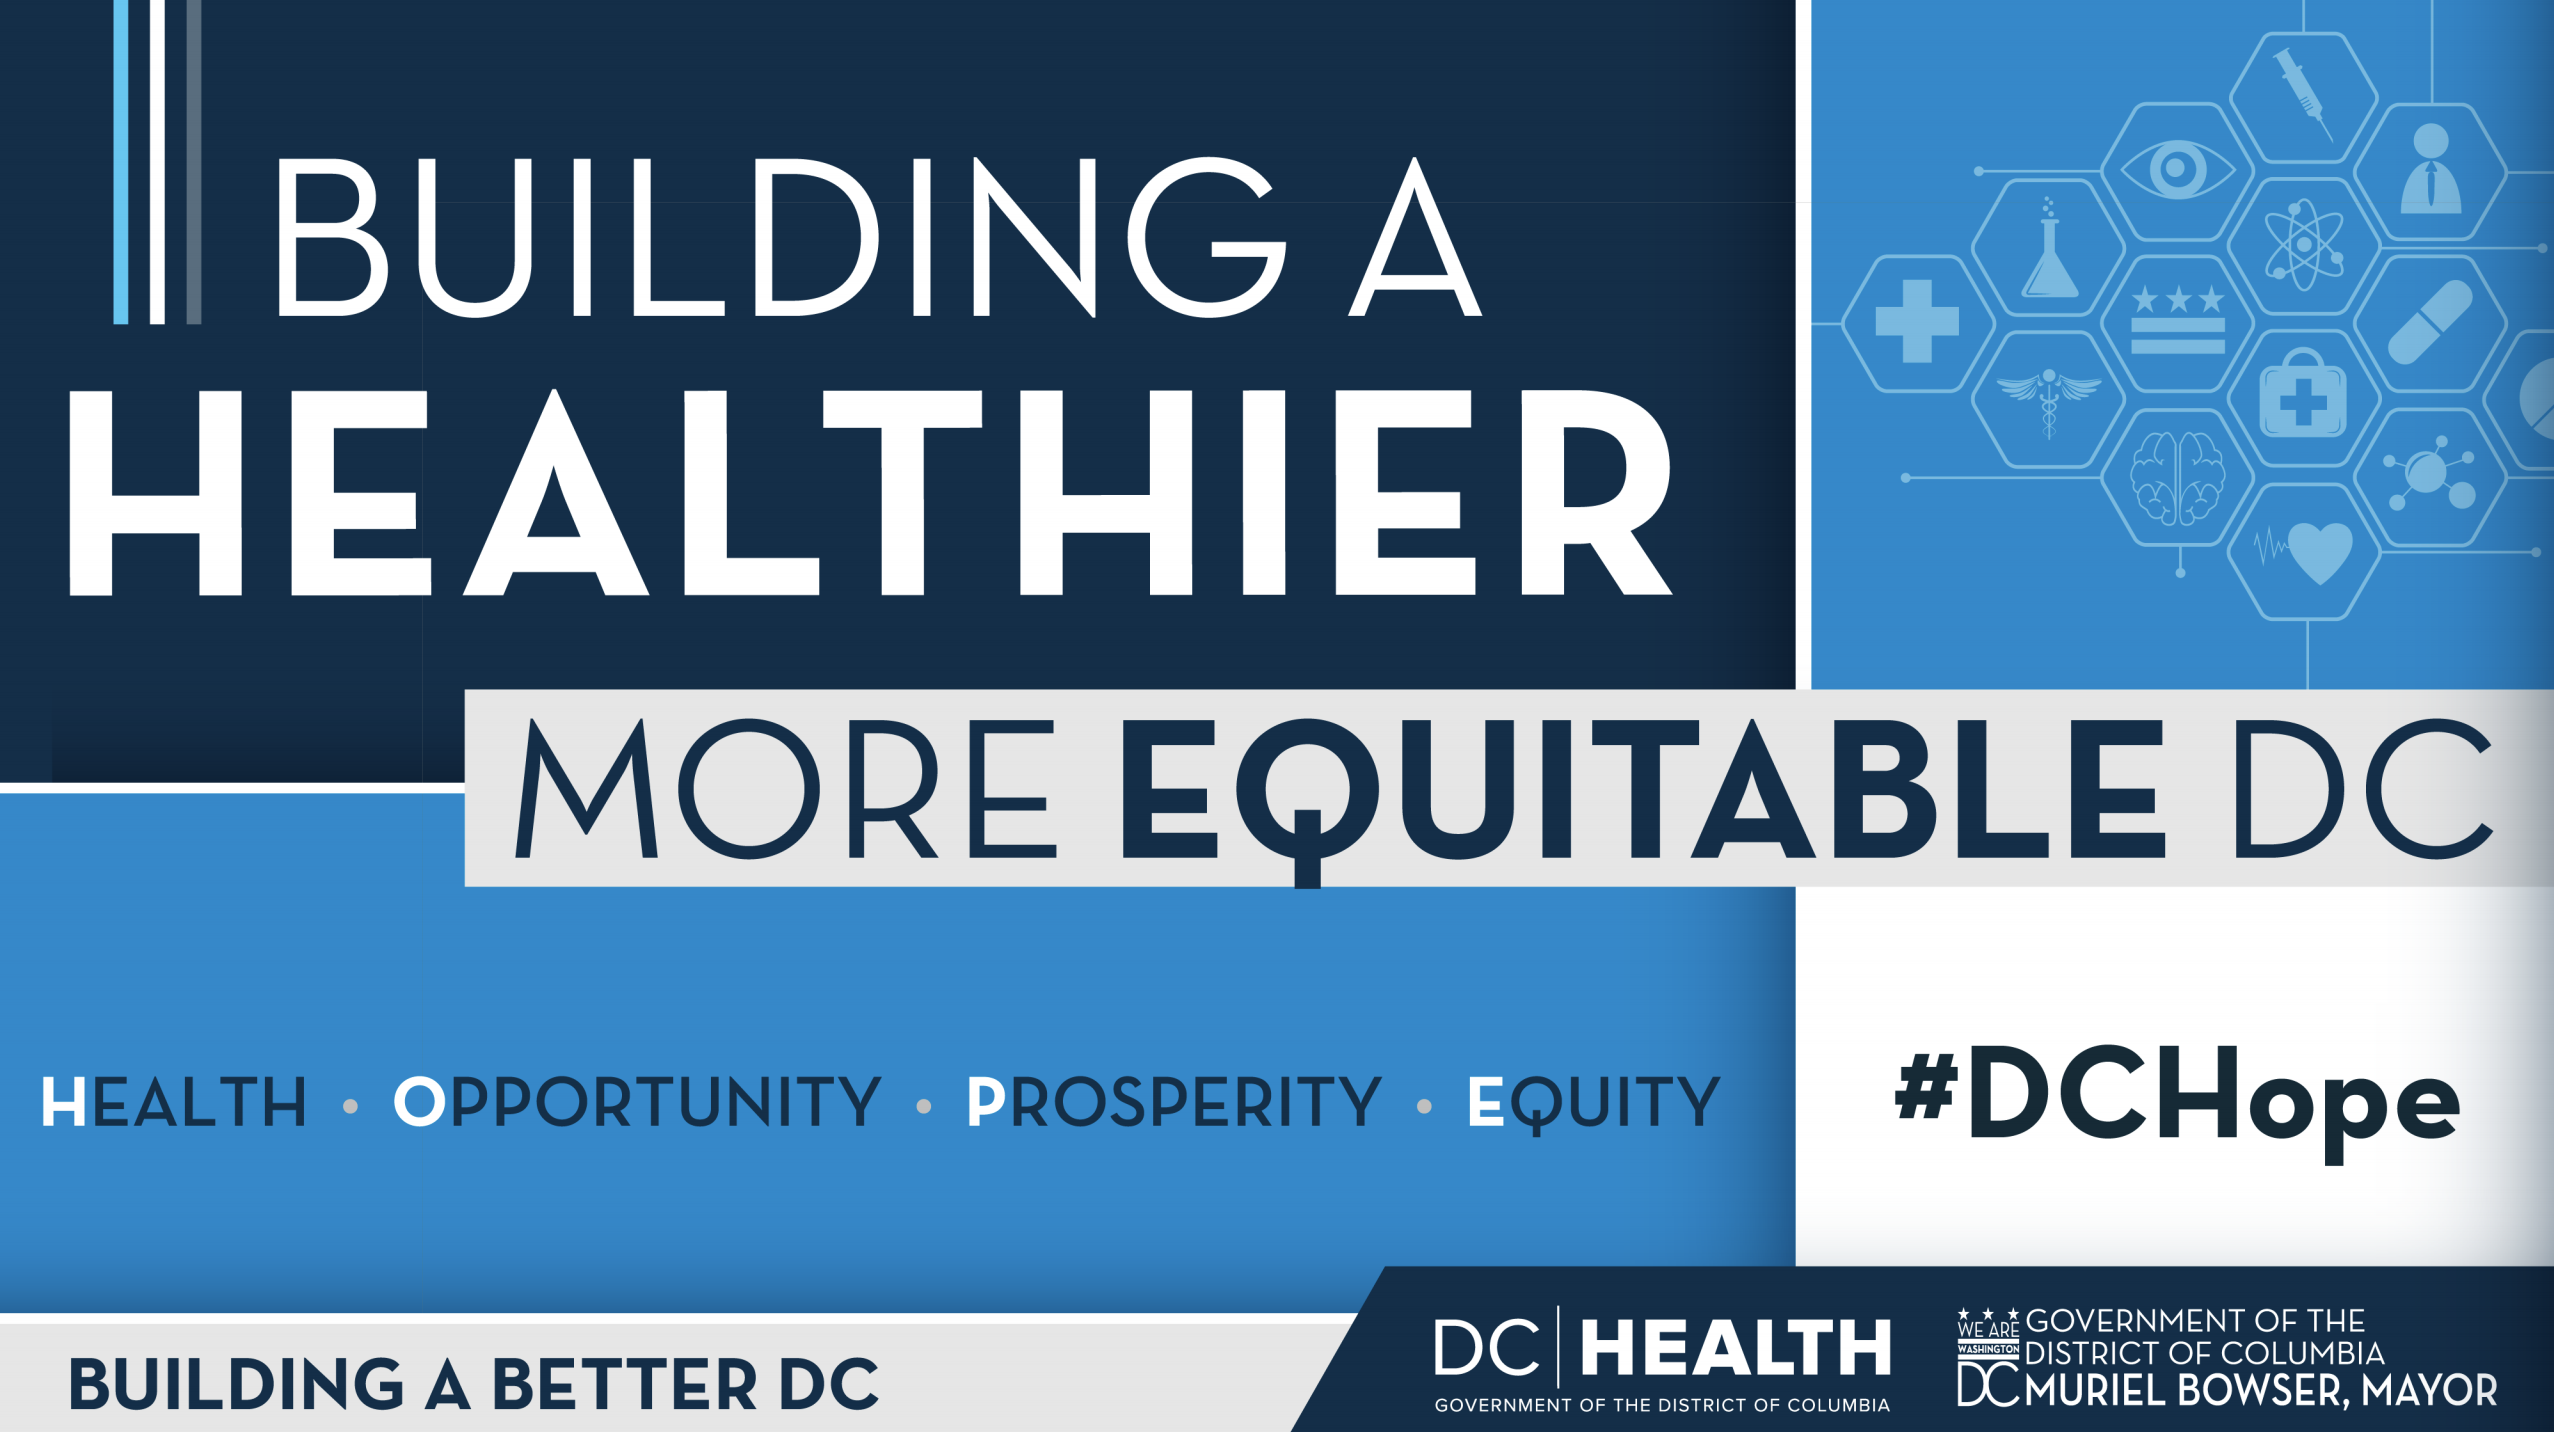 Building a More Equitable Healthcare System